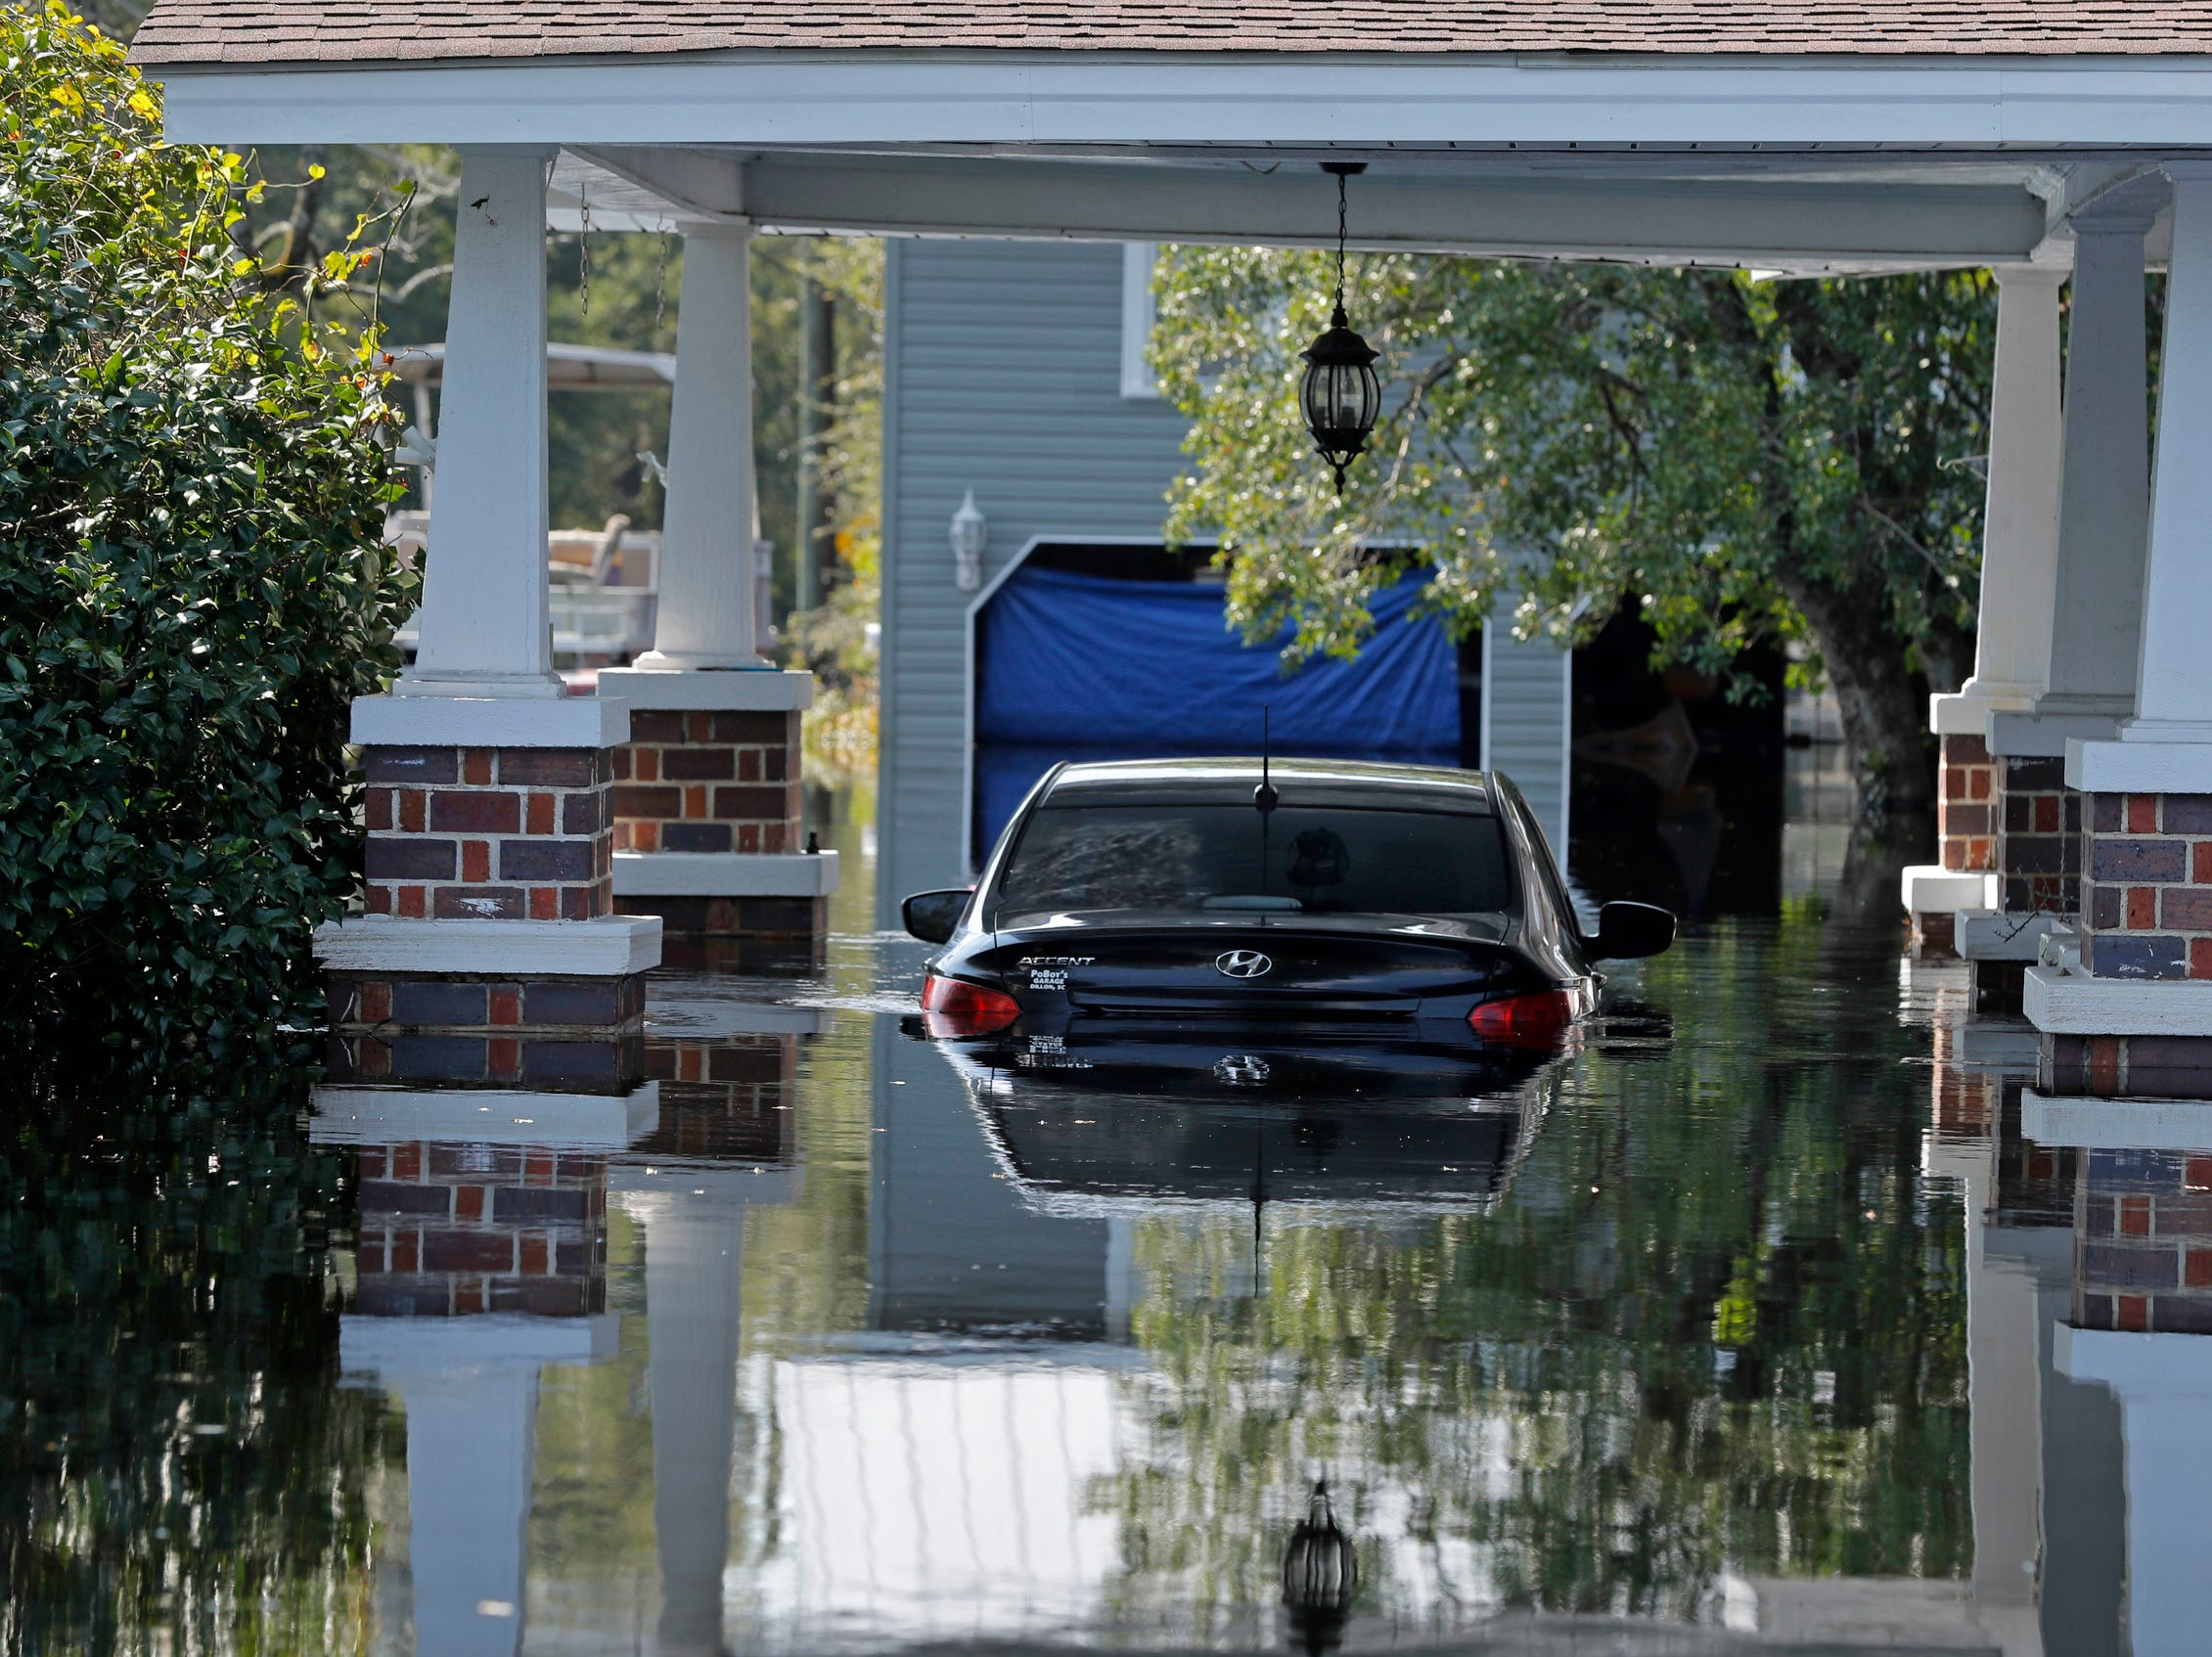 A submerged car sits in floodwaters in the aftermath of Hurricane Florence in Nichols, S.C., Friday.